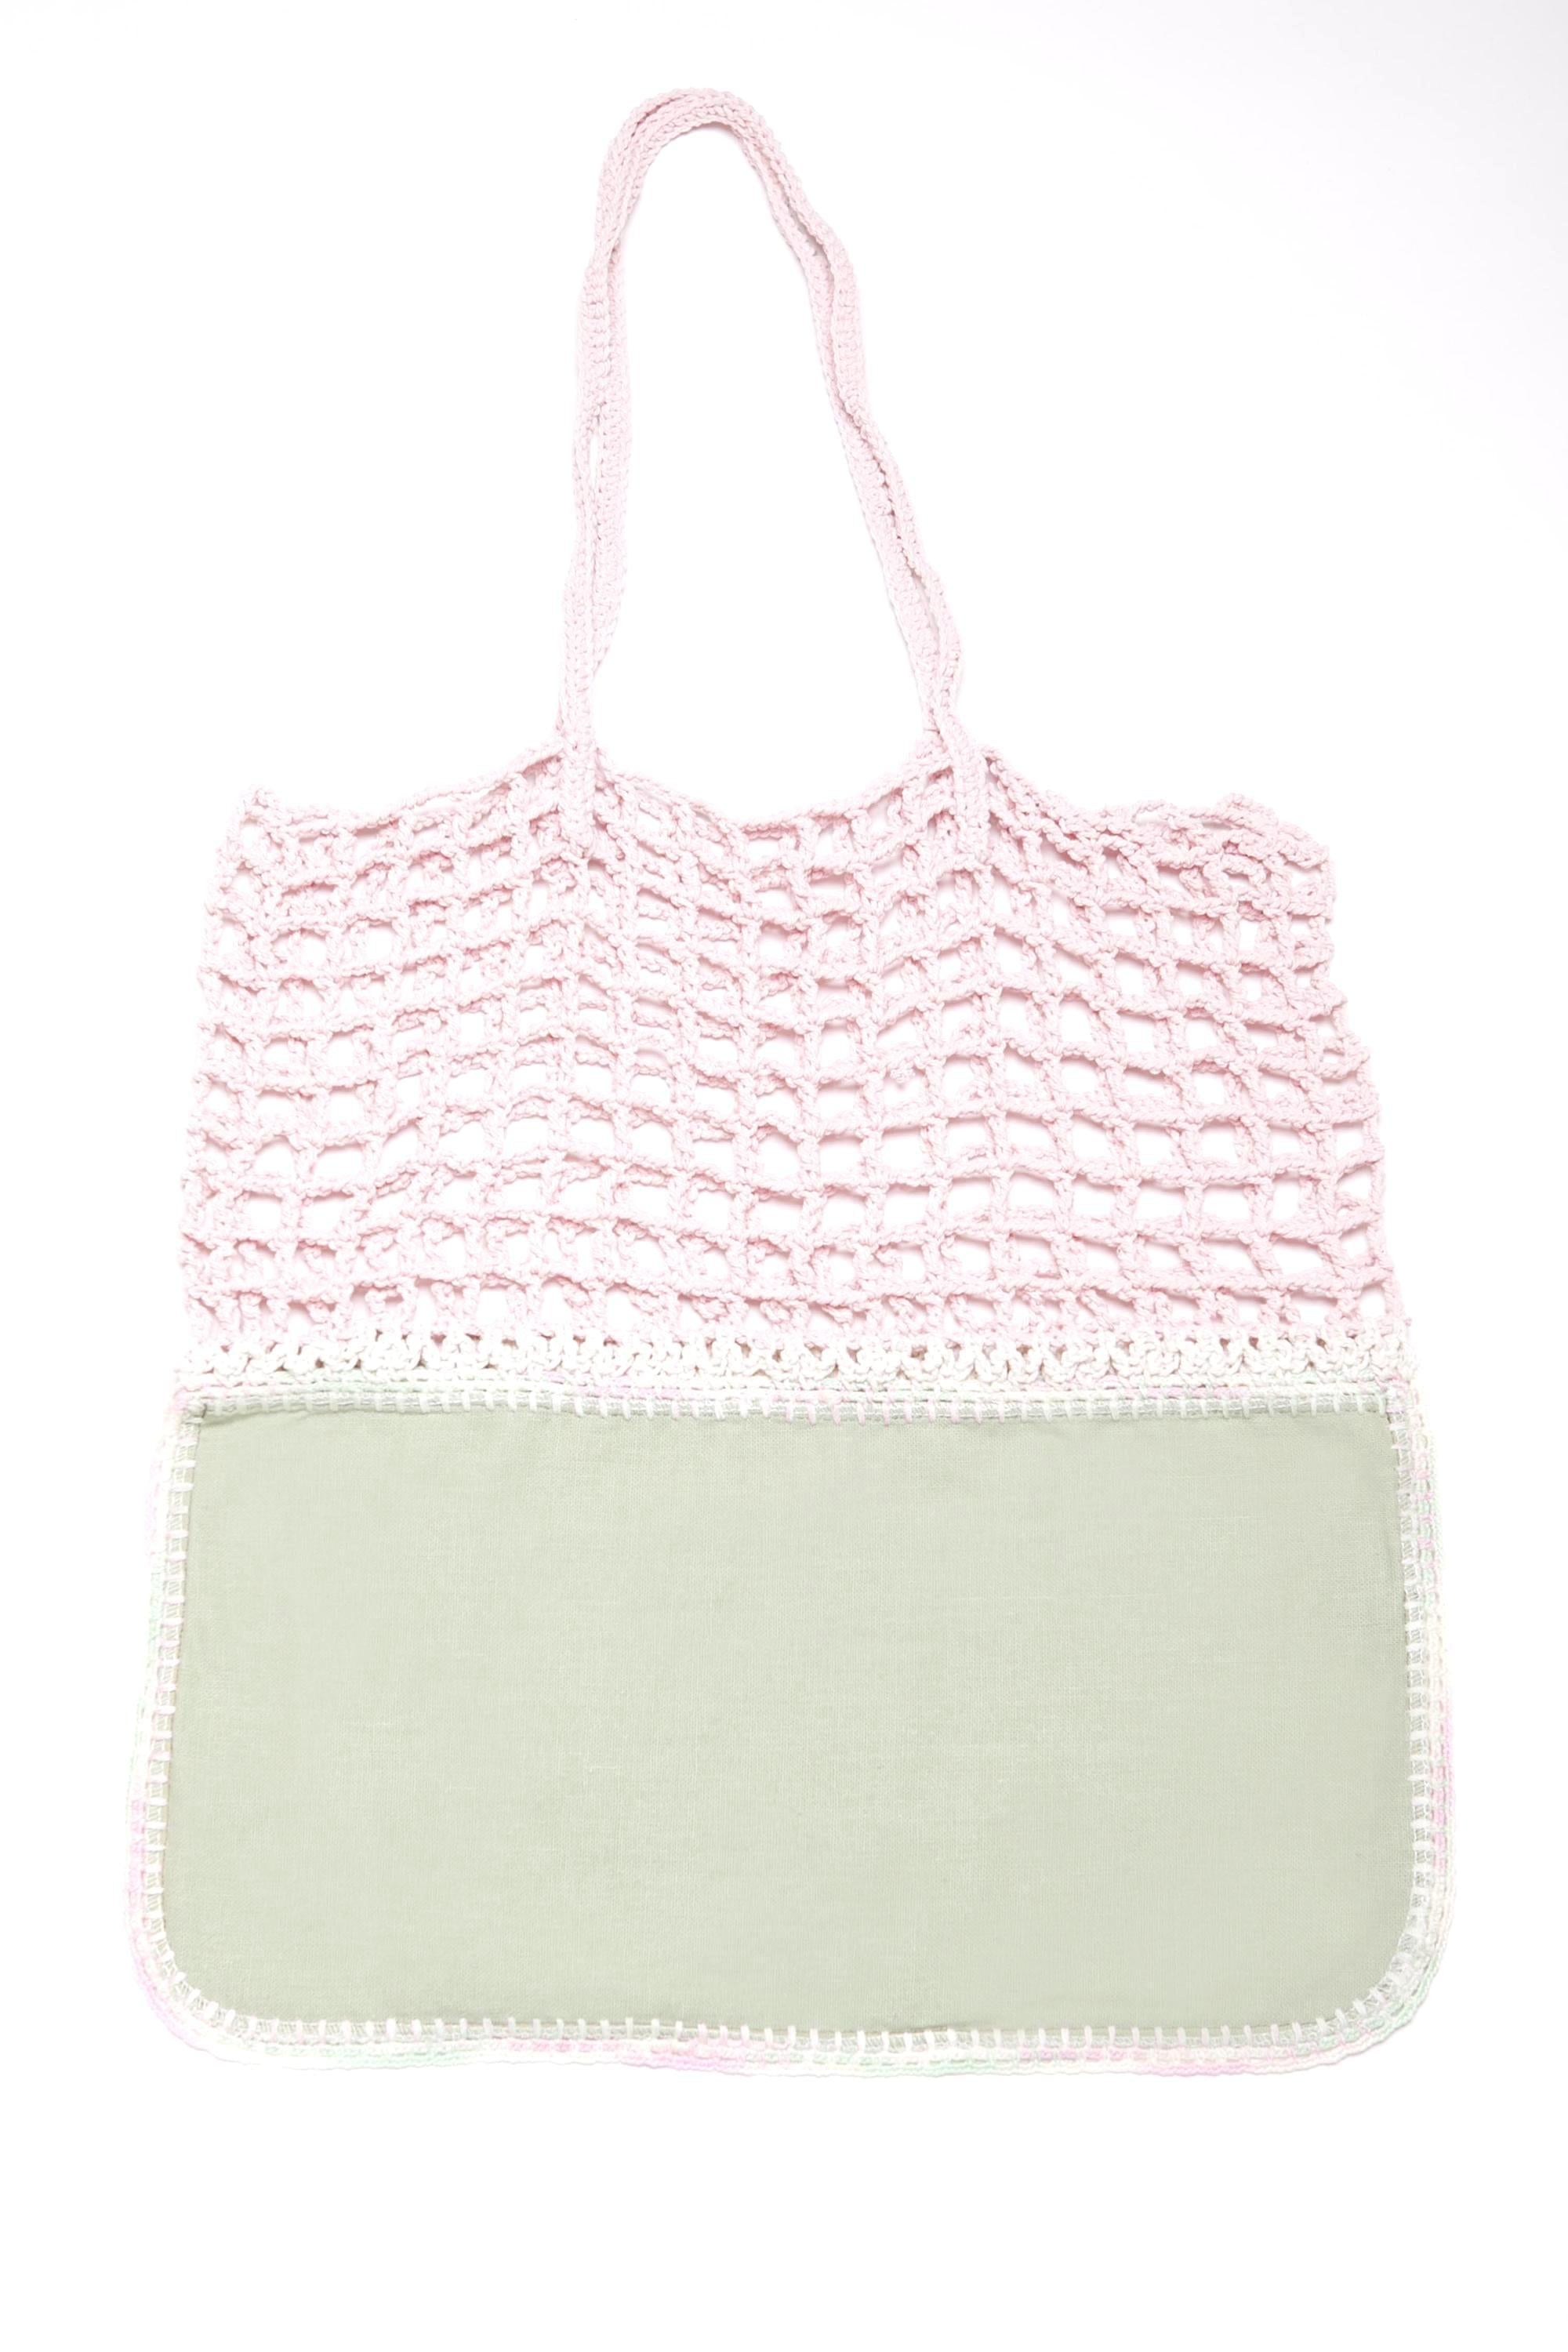 Gradie Pink and Avocado Crochet and Neoprene Bag-Merrymetric Bags-Temples and Markets